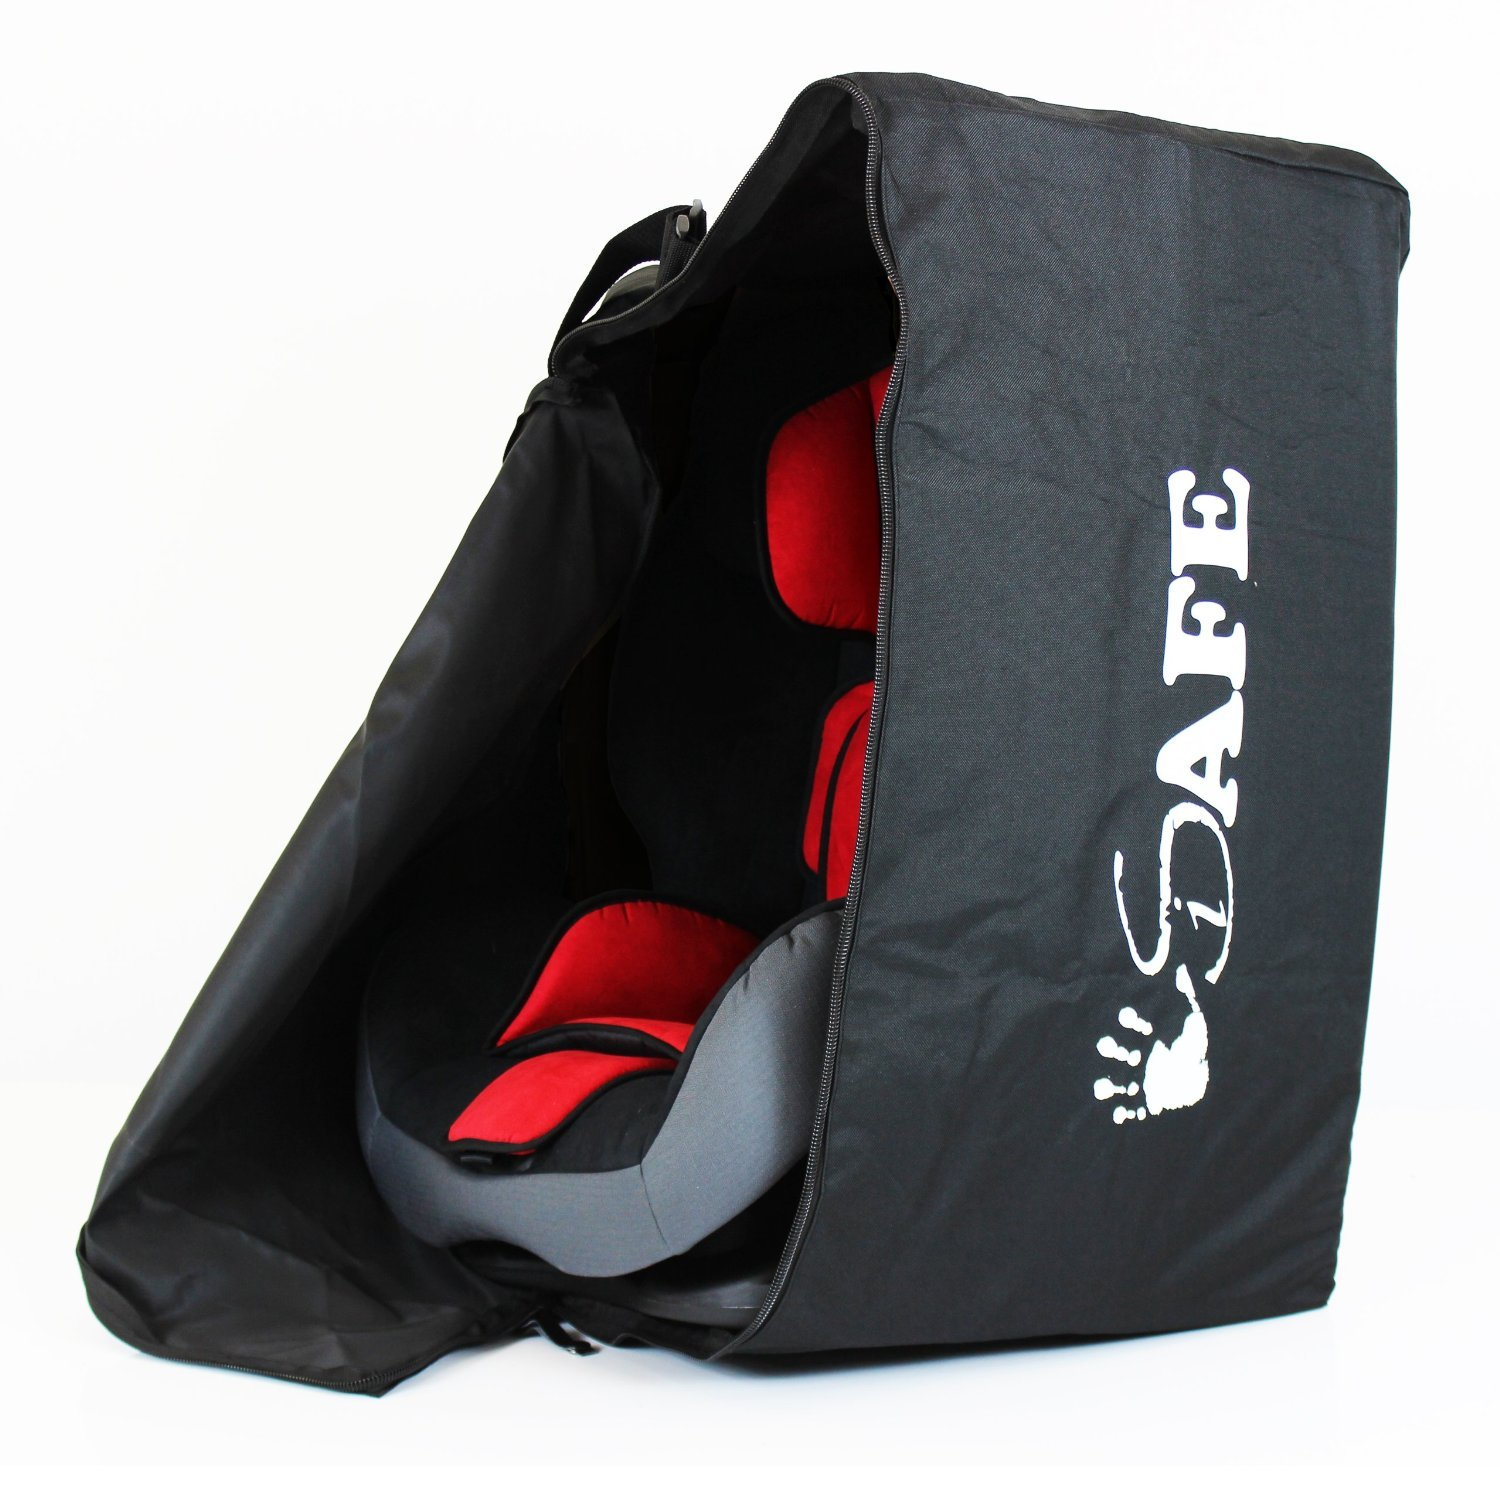 ISafe Universal Car Seat Travel Bag Amazoncouk Baby